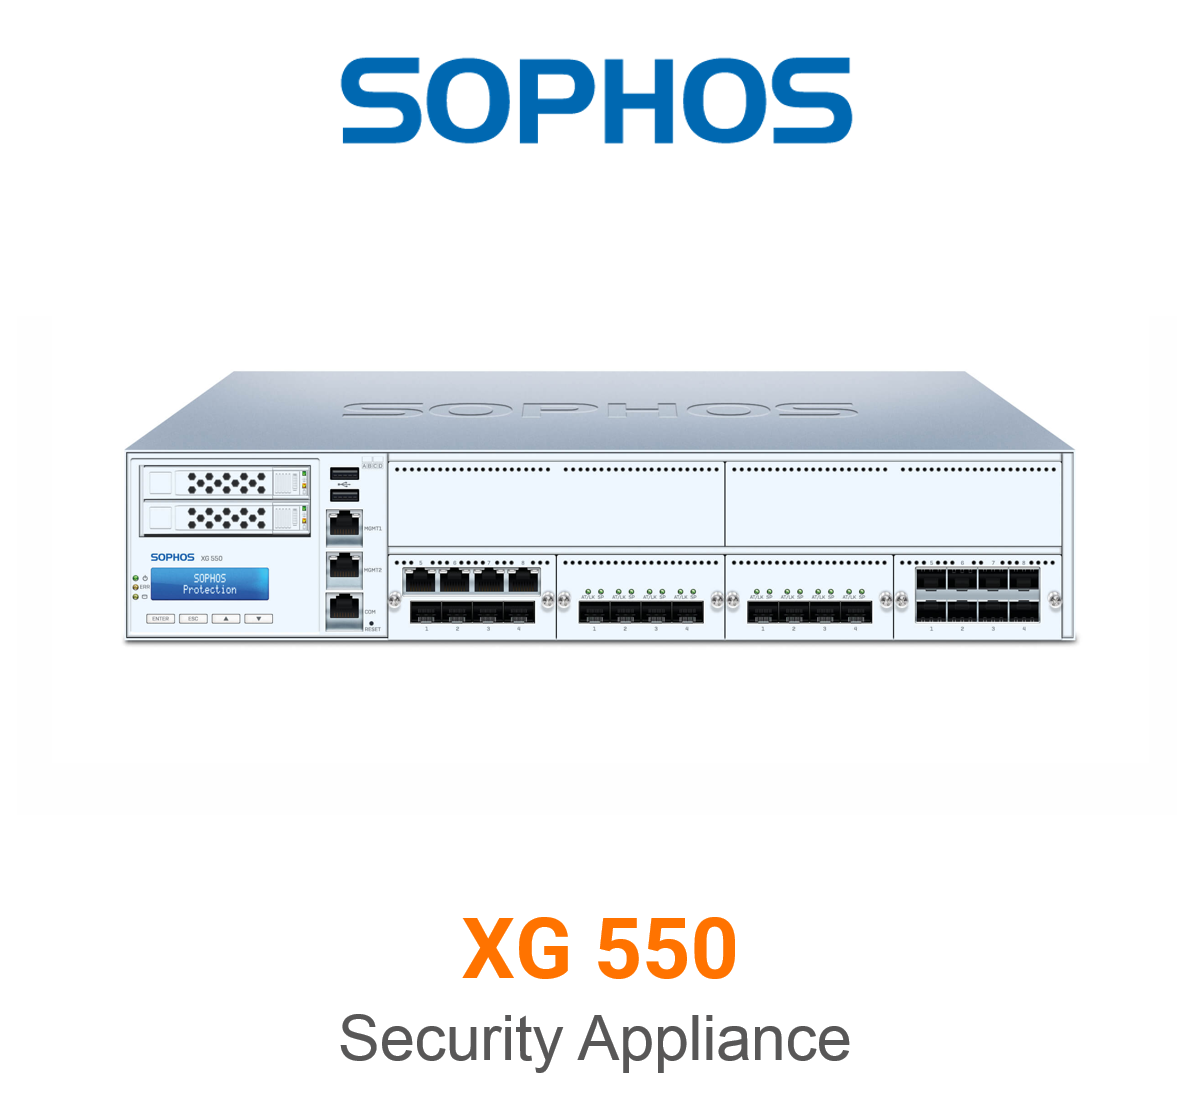 Sophos XG 550 Security Appliance